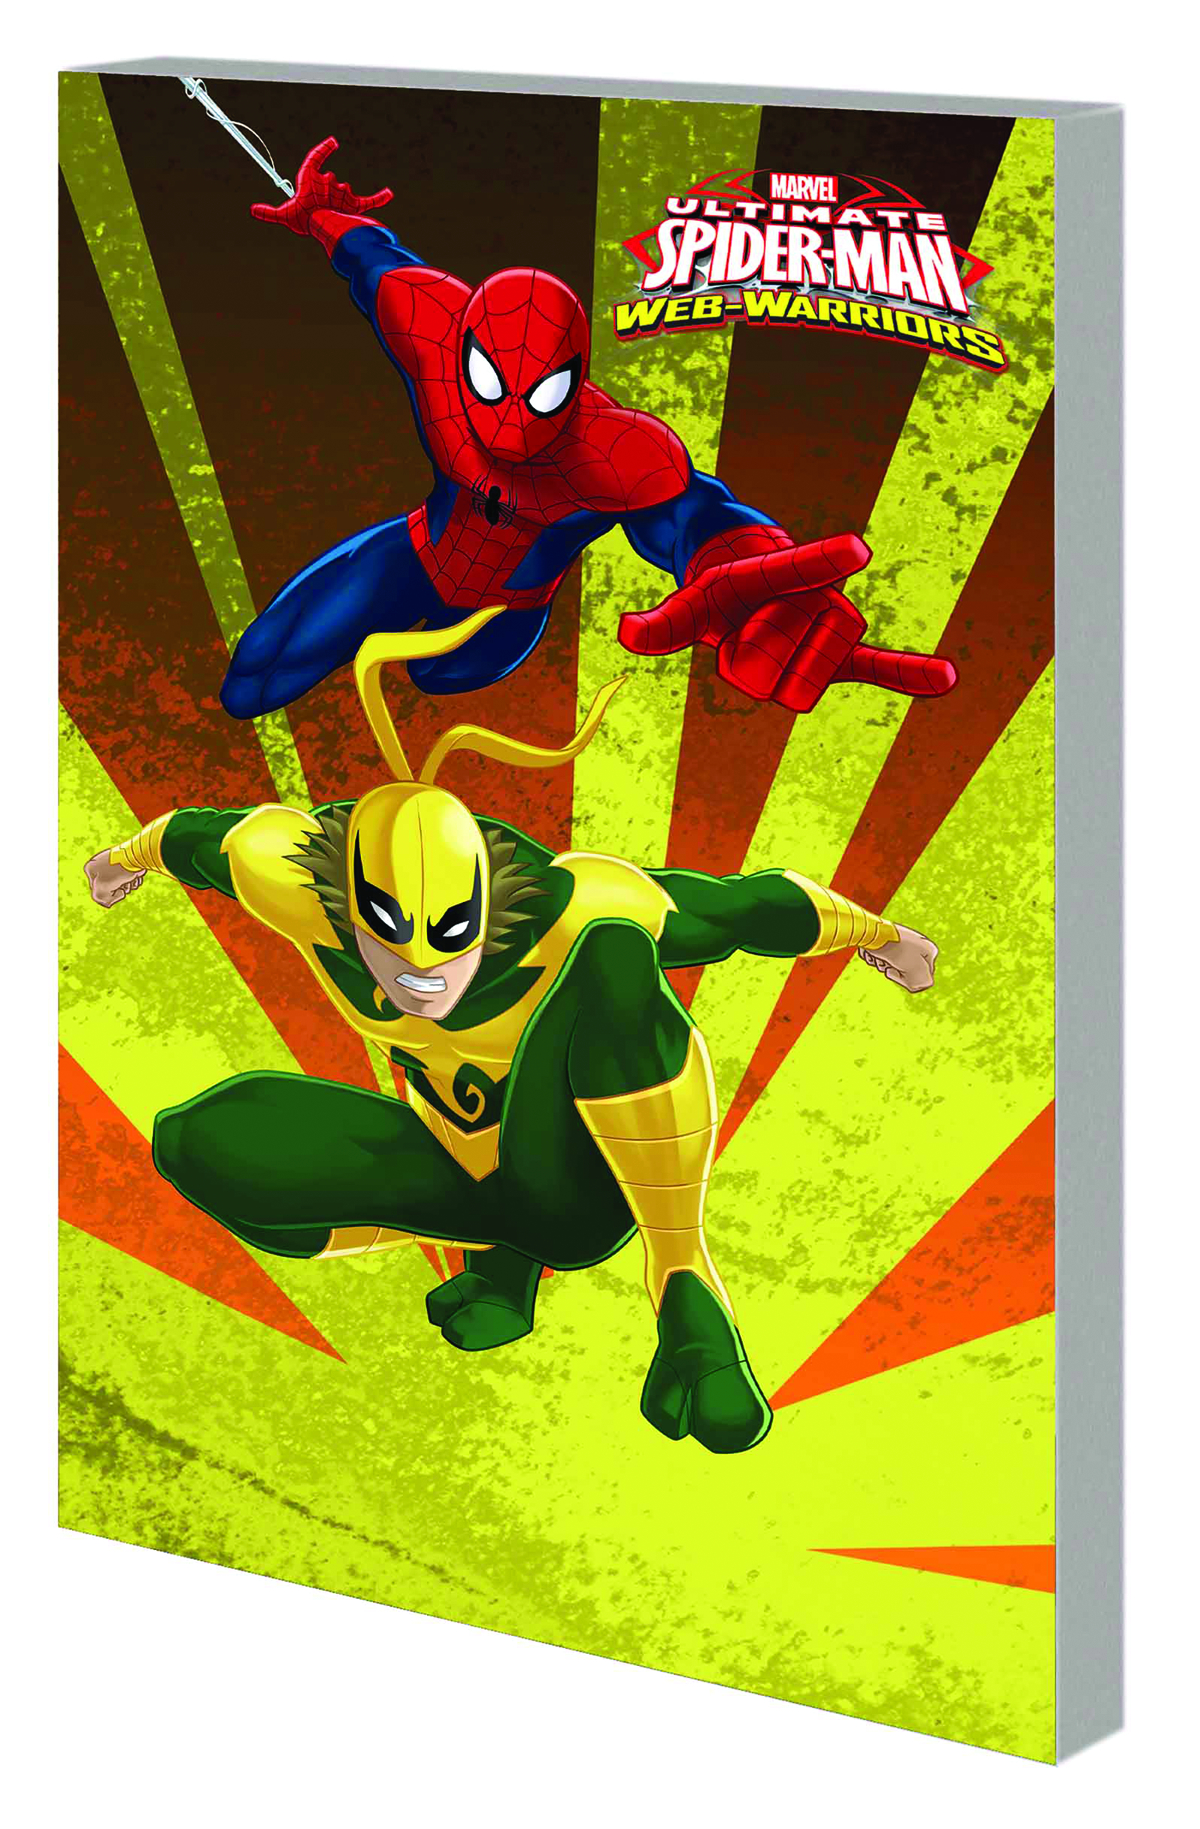 MU ULT SPIDER-MAN WEB WARRIORS DIGEST TP VOL 02